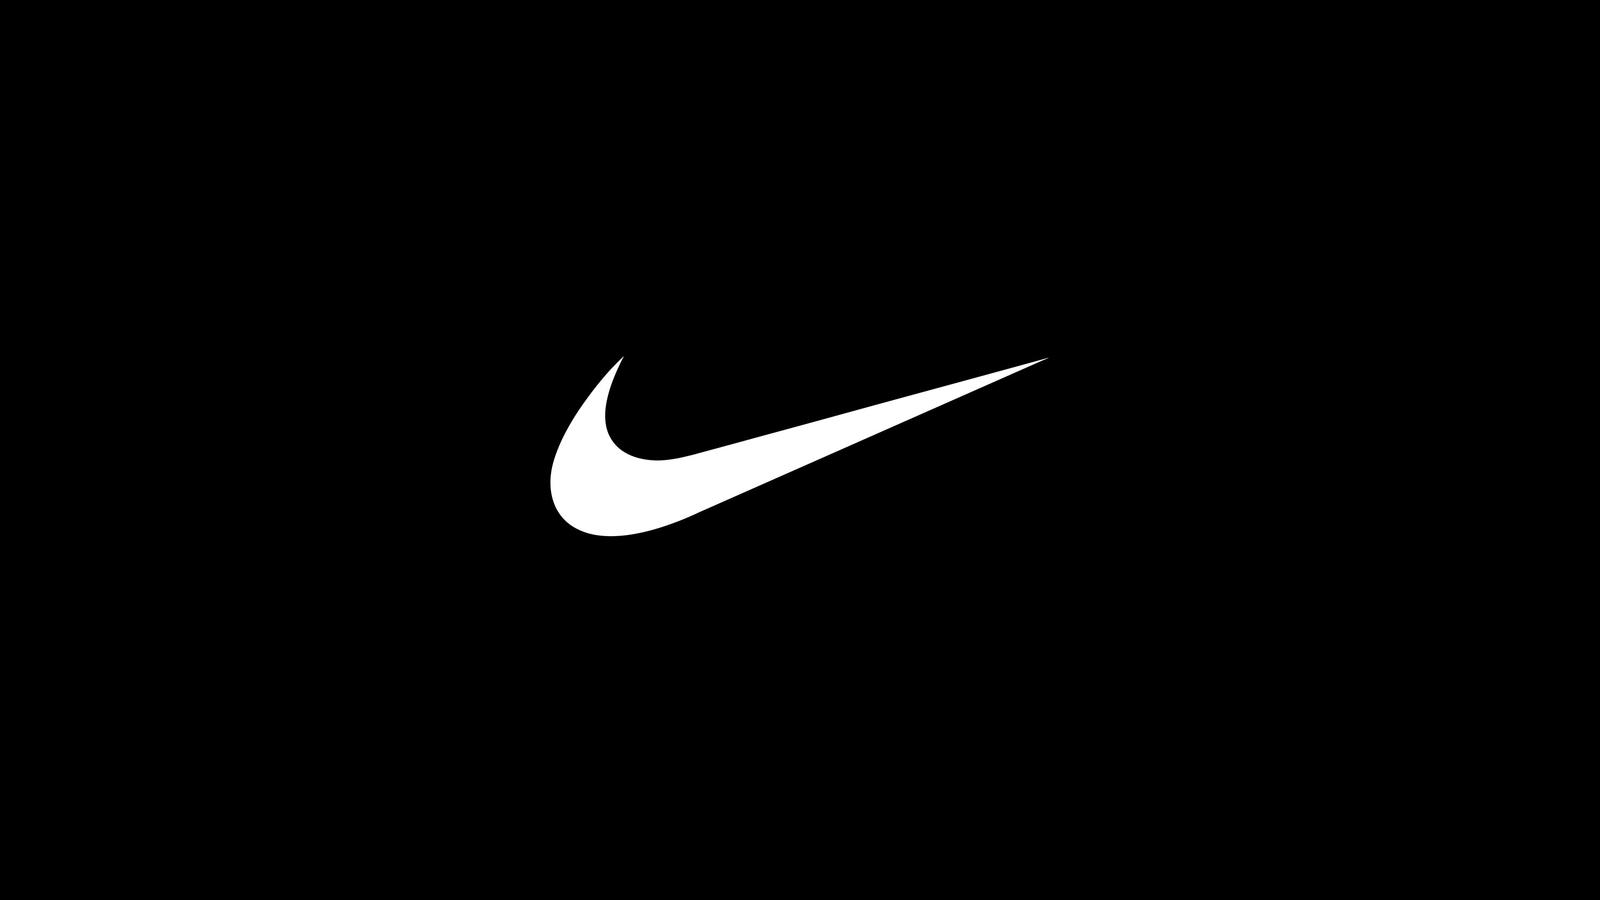 nike-for-once,-don't-do-it-film